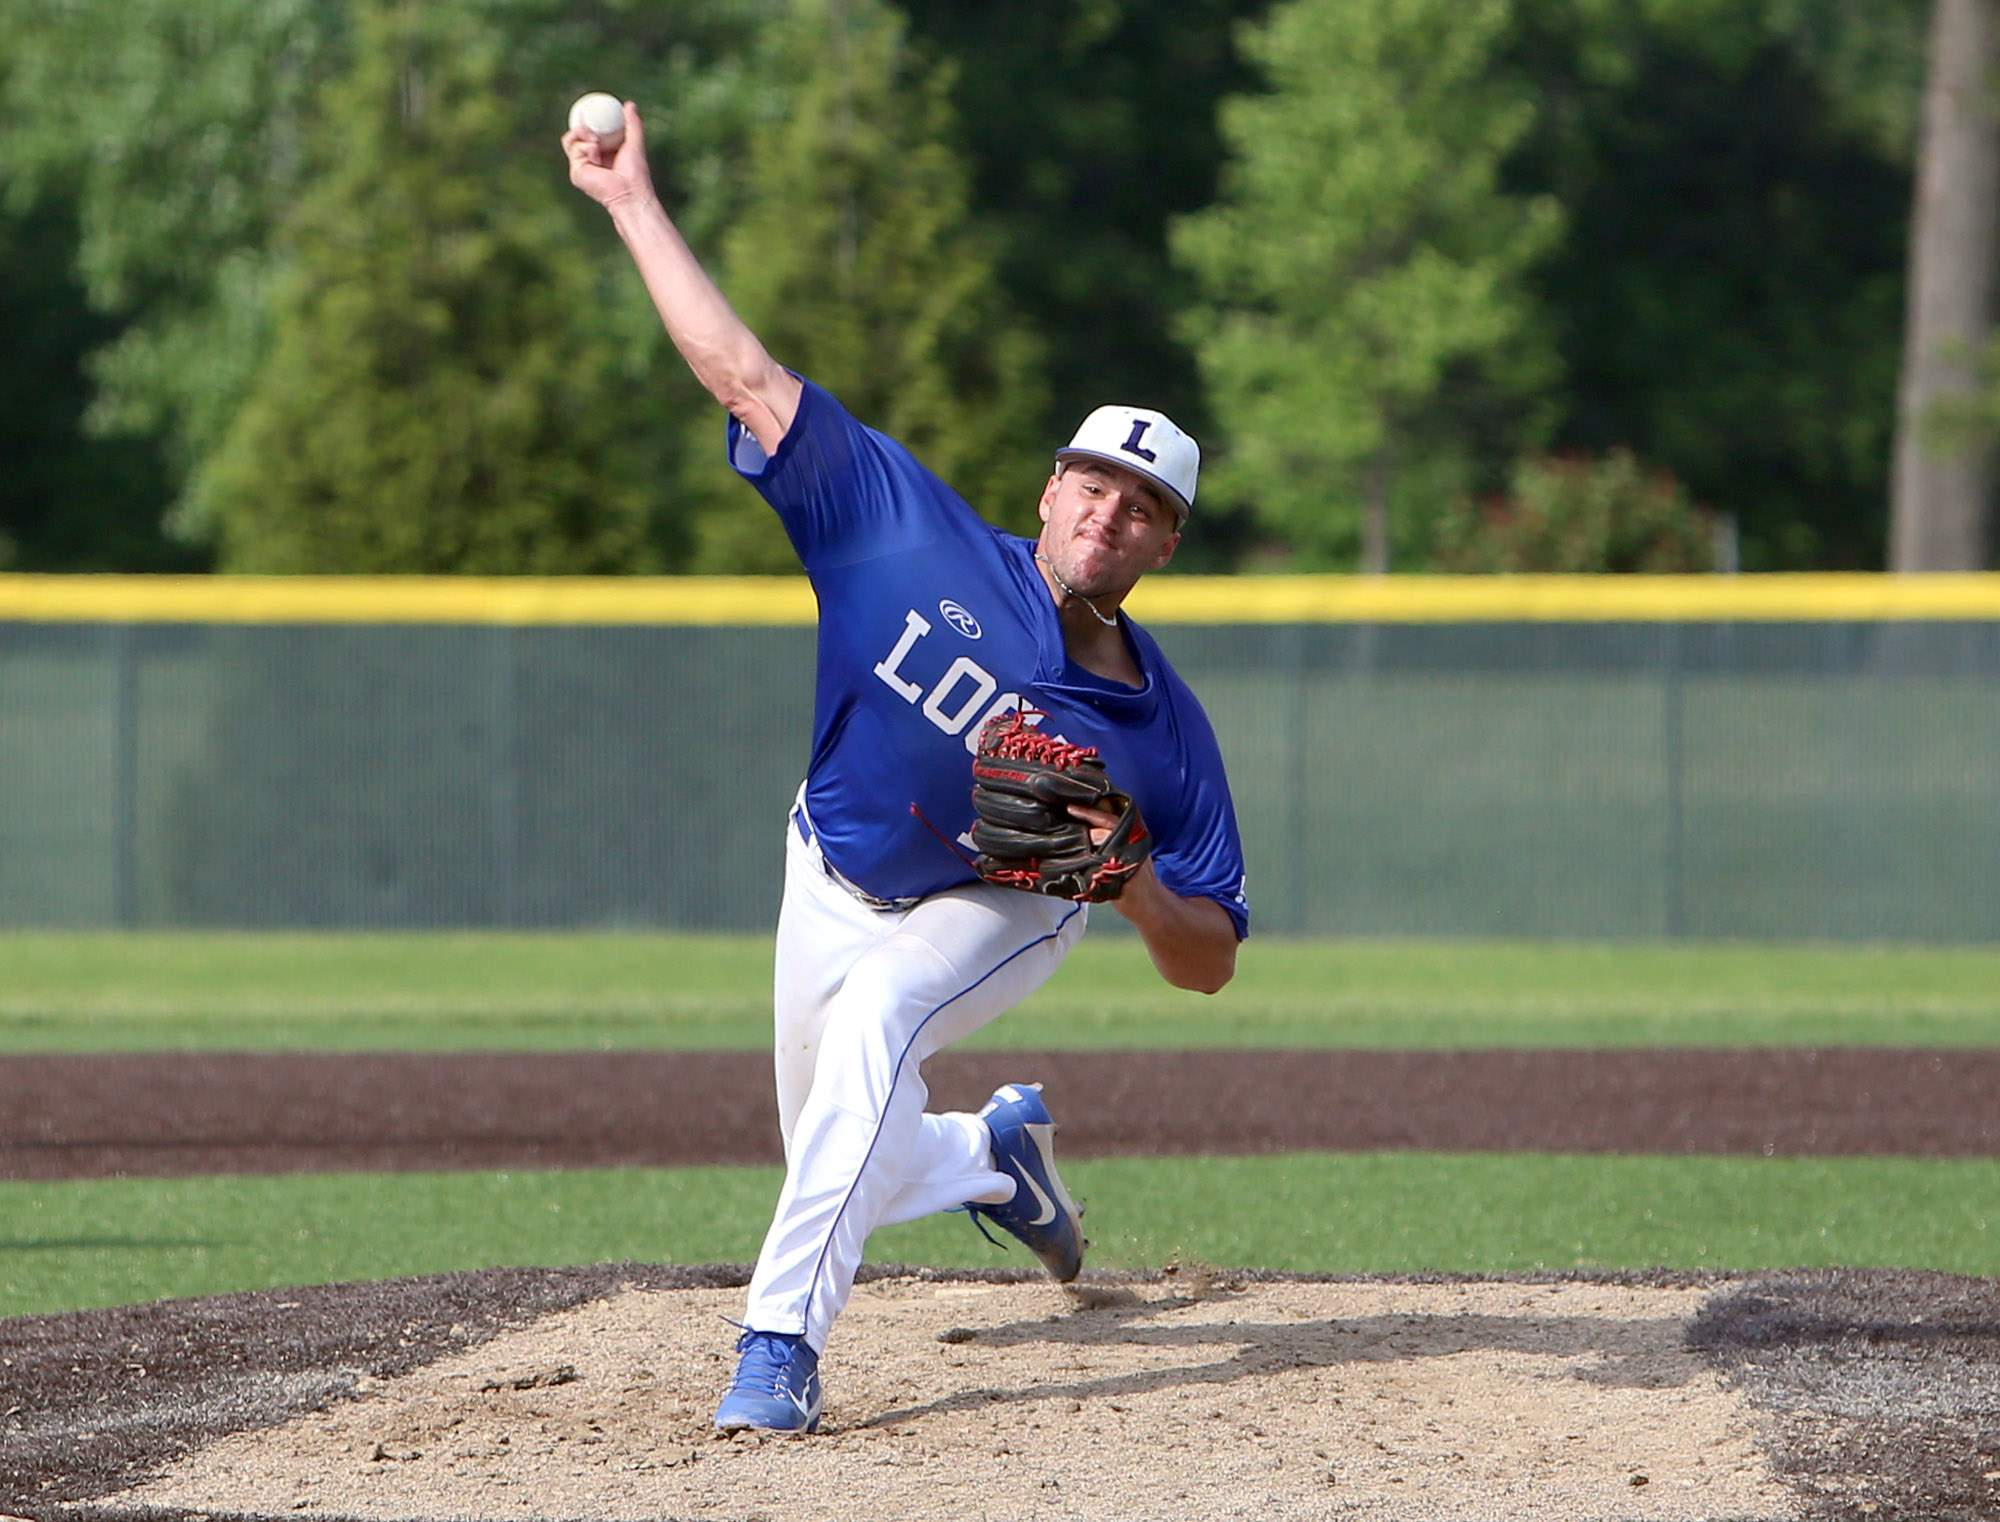 Brenden Heiss throws a pitch Saturday.